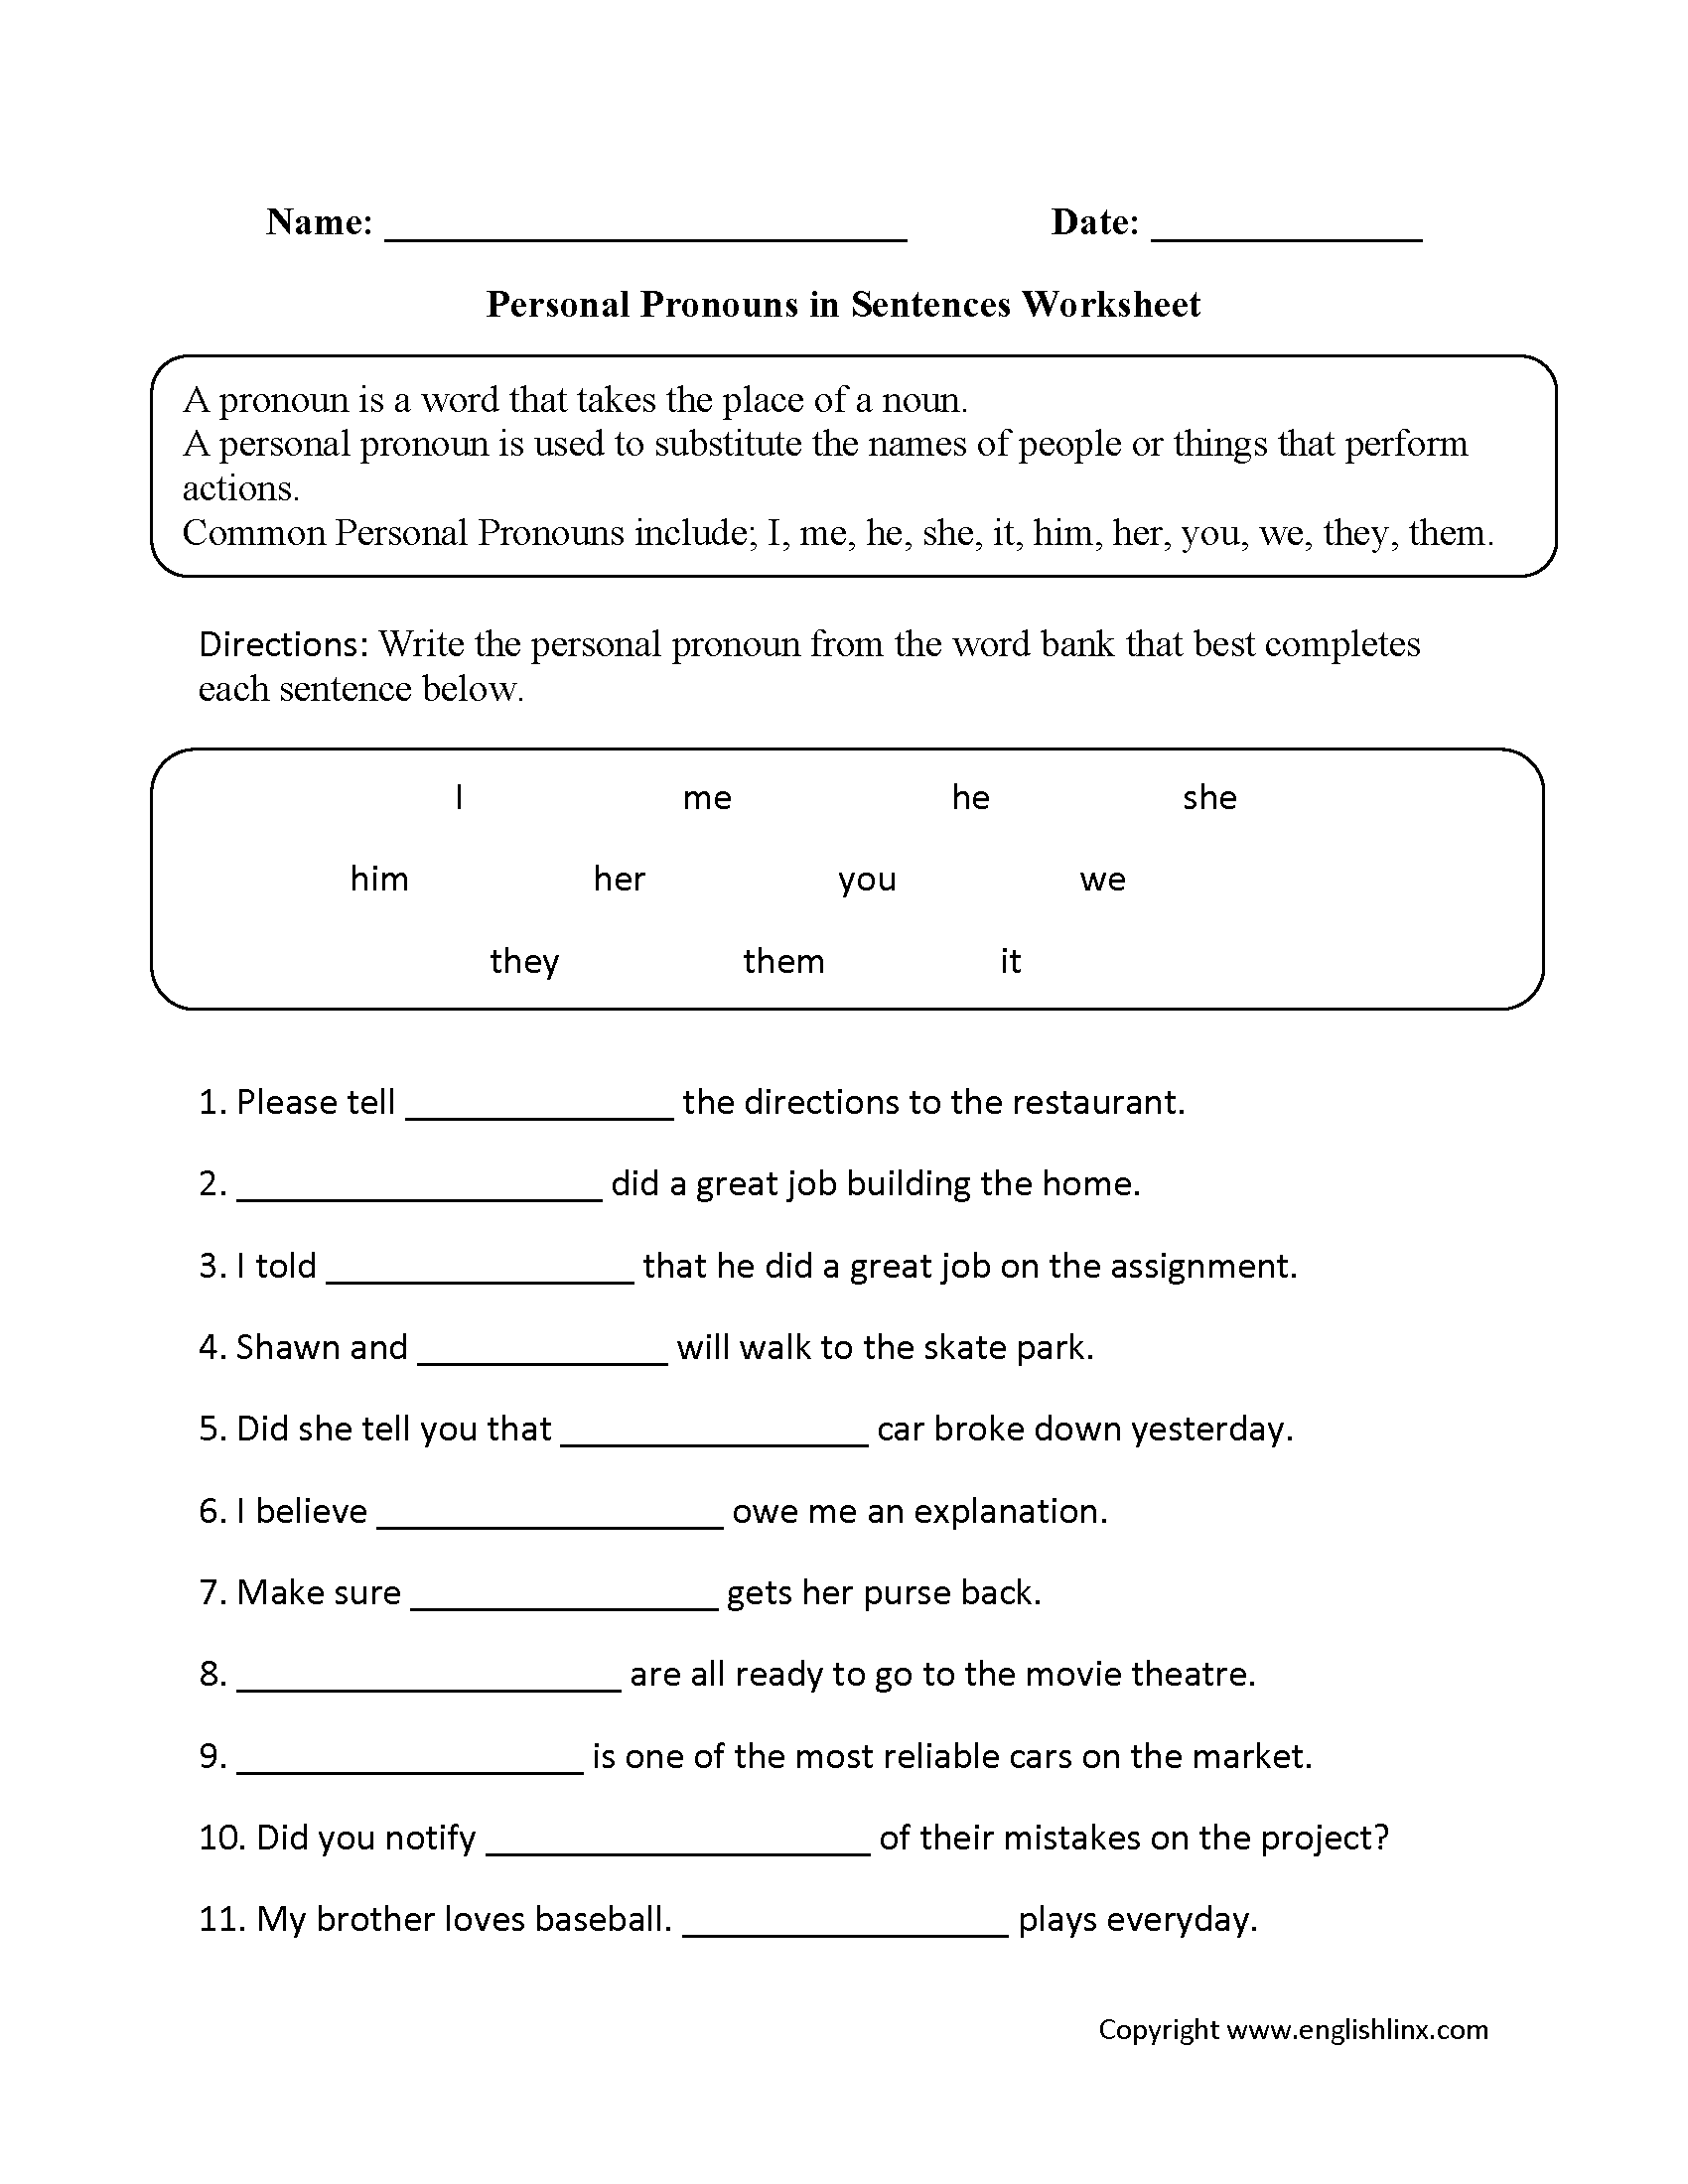 hight resolution of Personal Pronouns Worksheets   Personal Pronouns in Sentences Worksheets